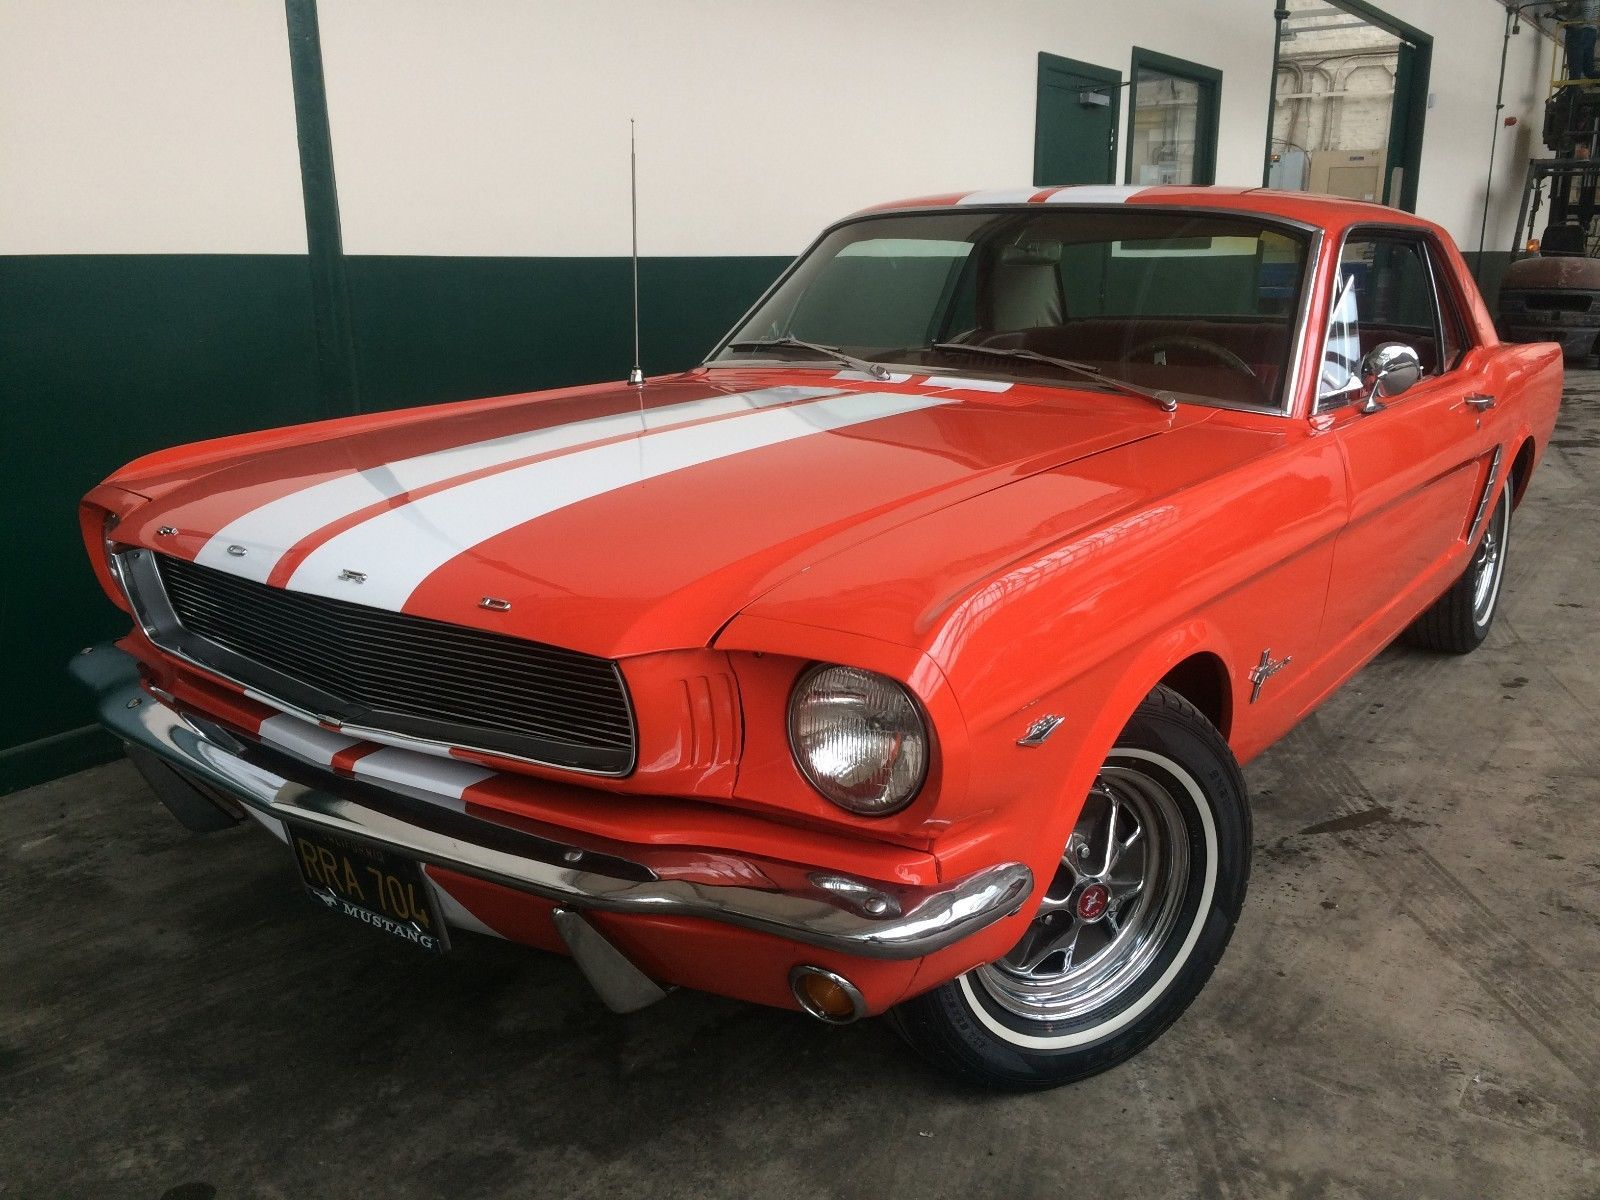 1965 Ford Mustang 289 V8 Auto Power Steering Stunning Condition Best On Offer Ford Mustang Mustang Ford